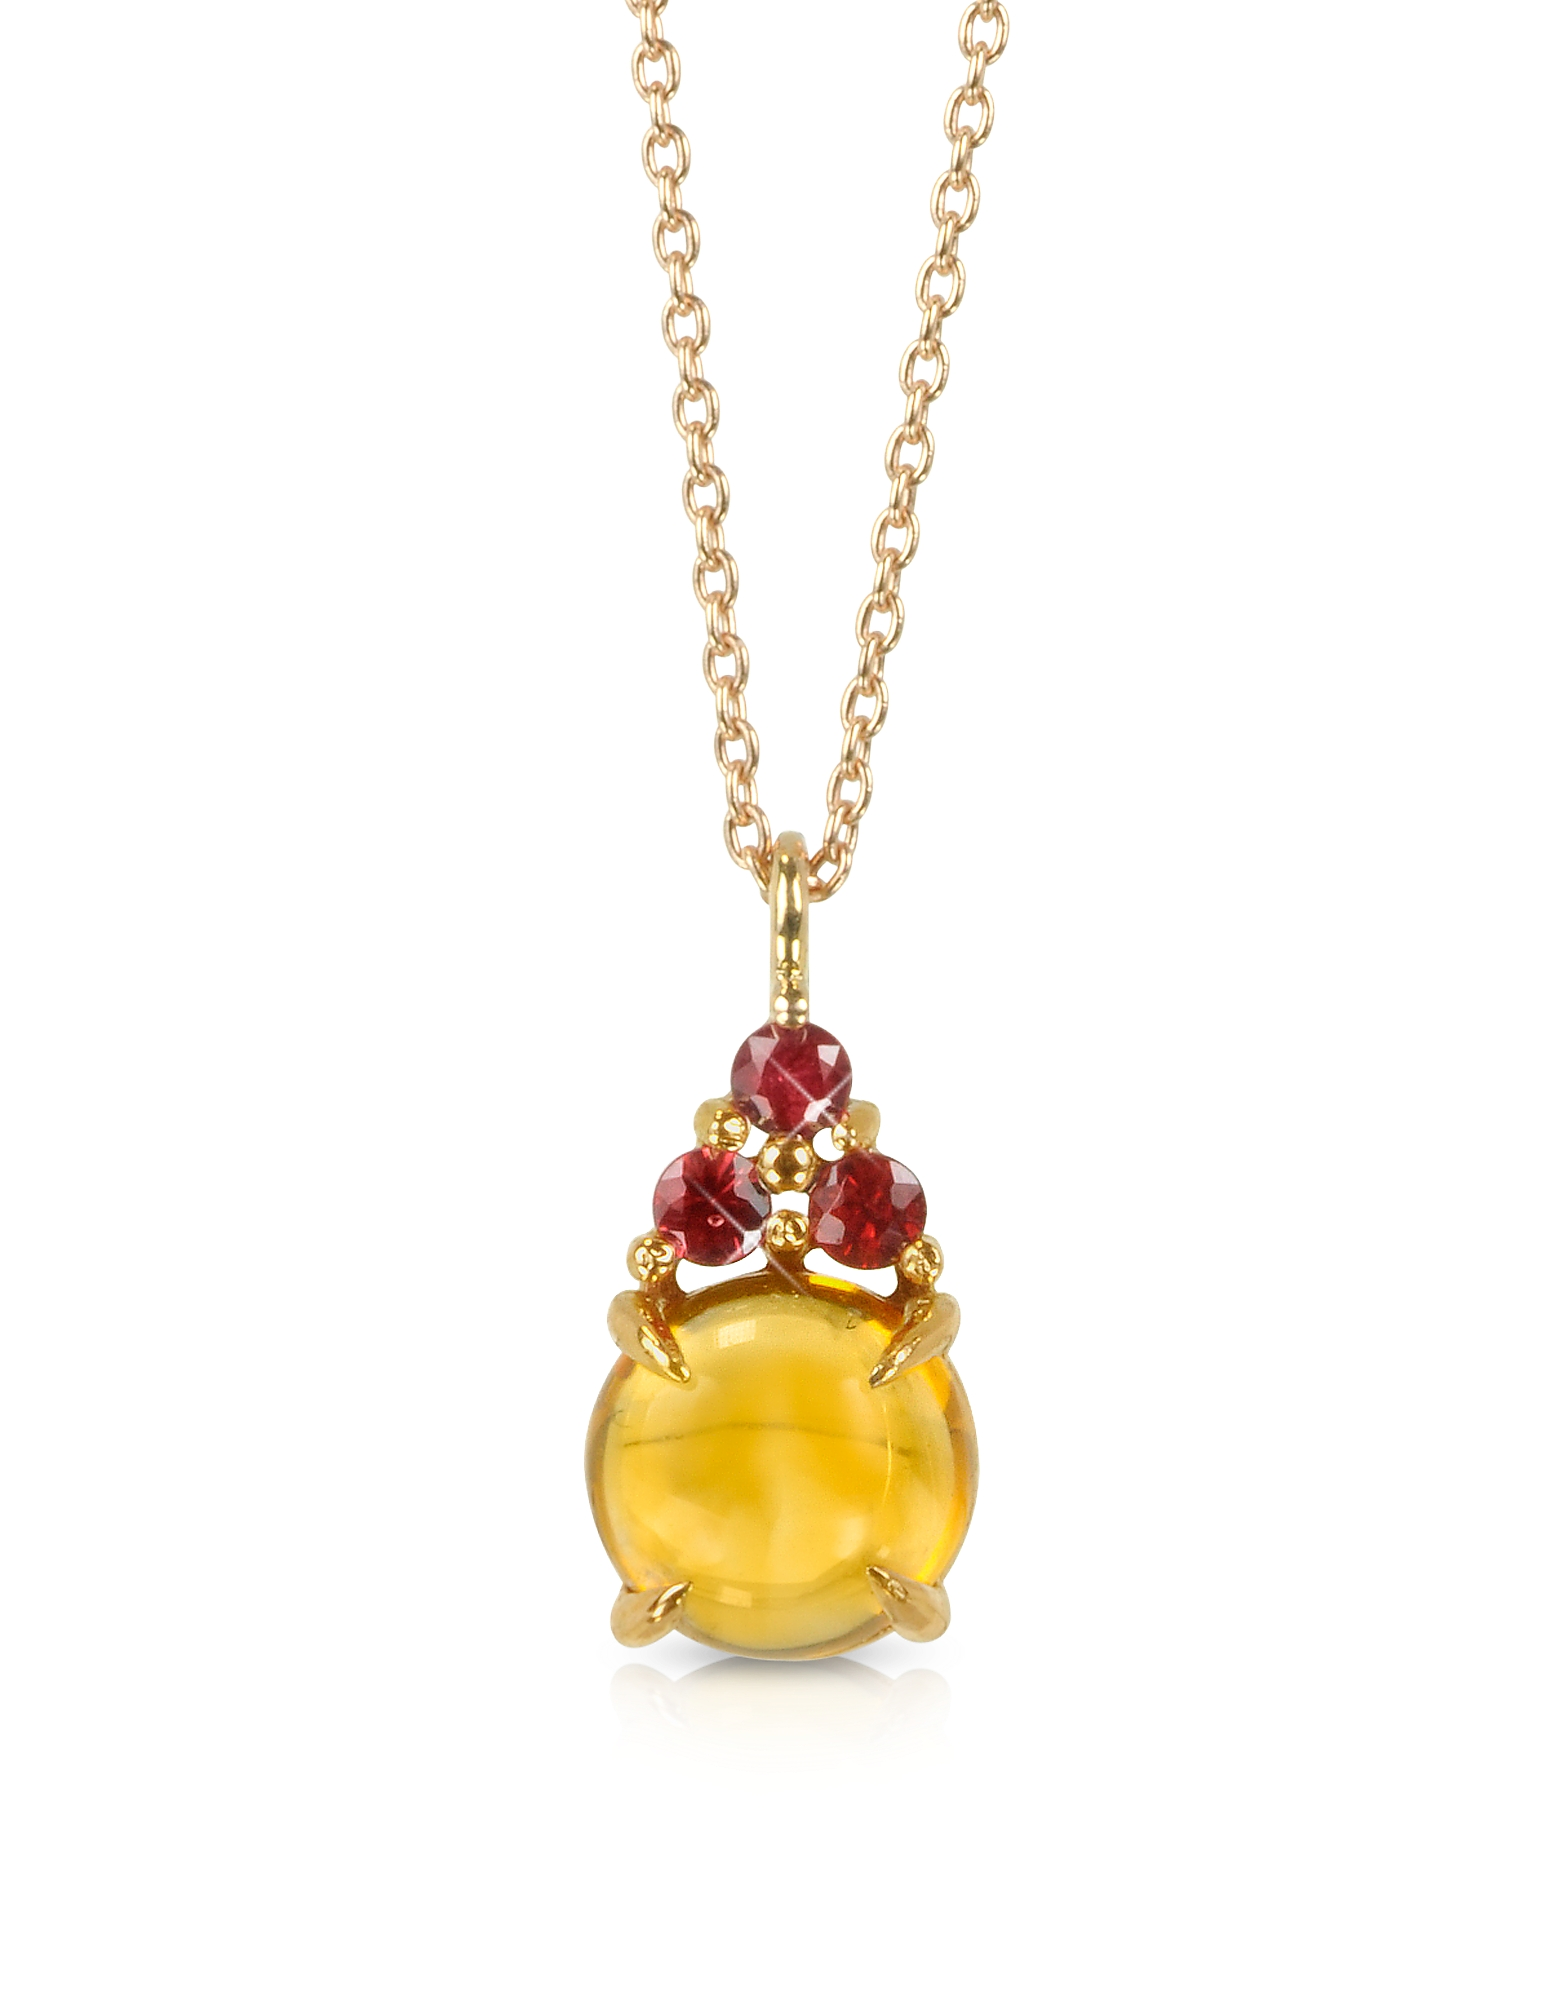 Image of Mia & Beverly Designer Necklaces, Citrine Quartz and Red Sapphires 18K Rose Gold Pendant Necklace